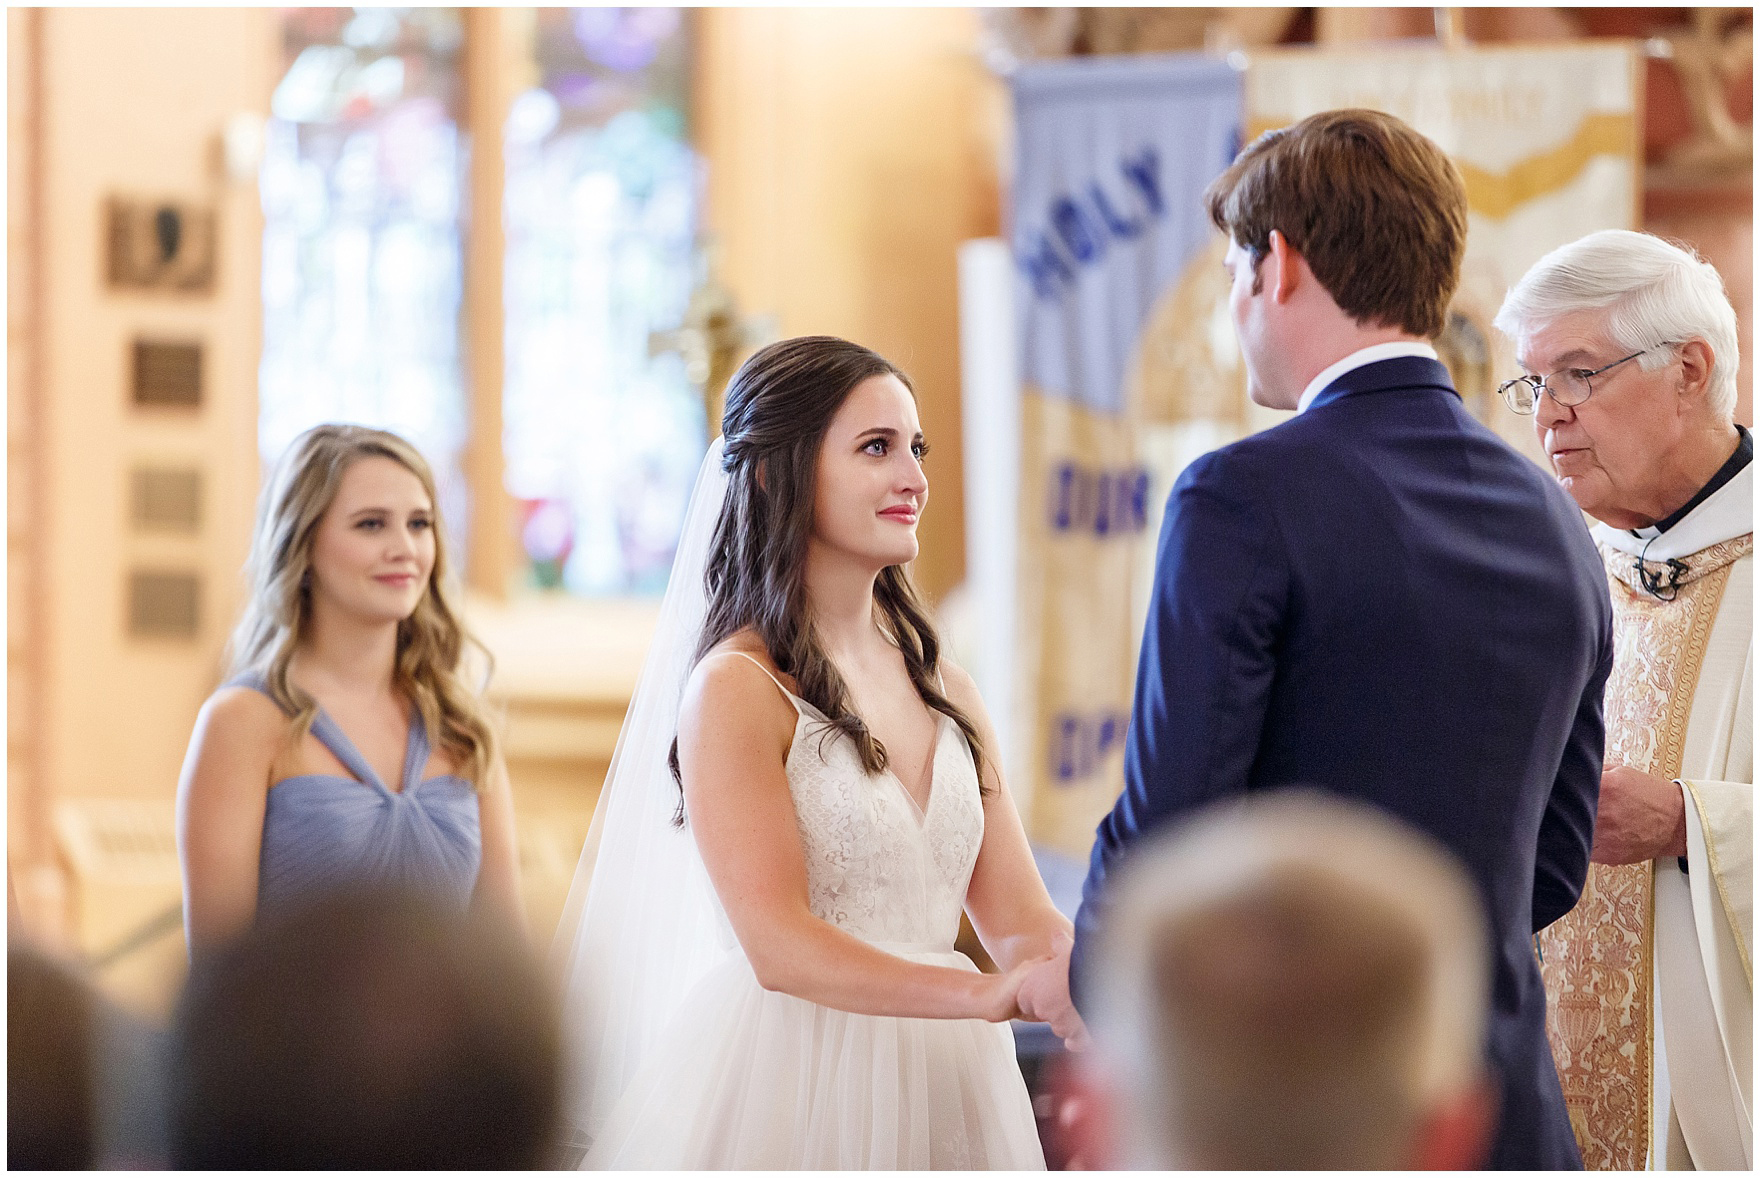 The bride and groom exchange vows in Chicago's historic Holy Family Church, site of the ceremony for a Butterfield Country Club wedding.